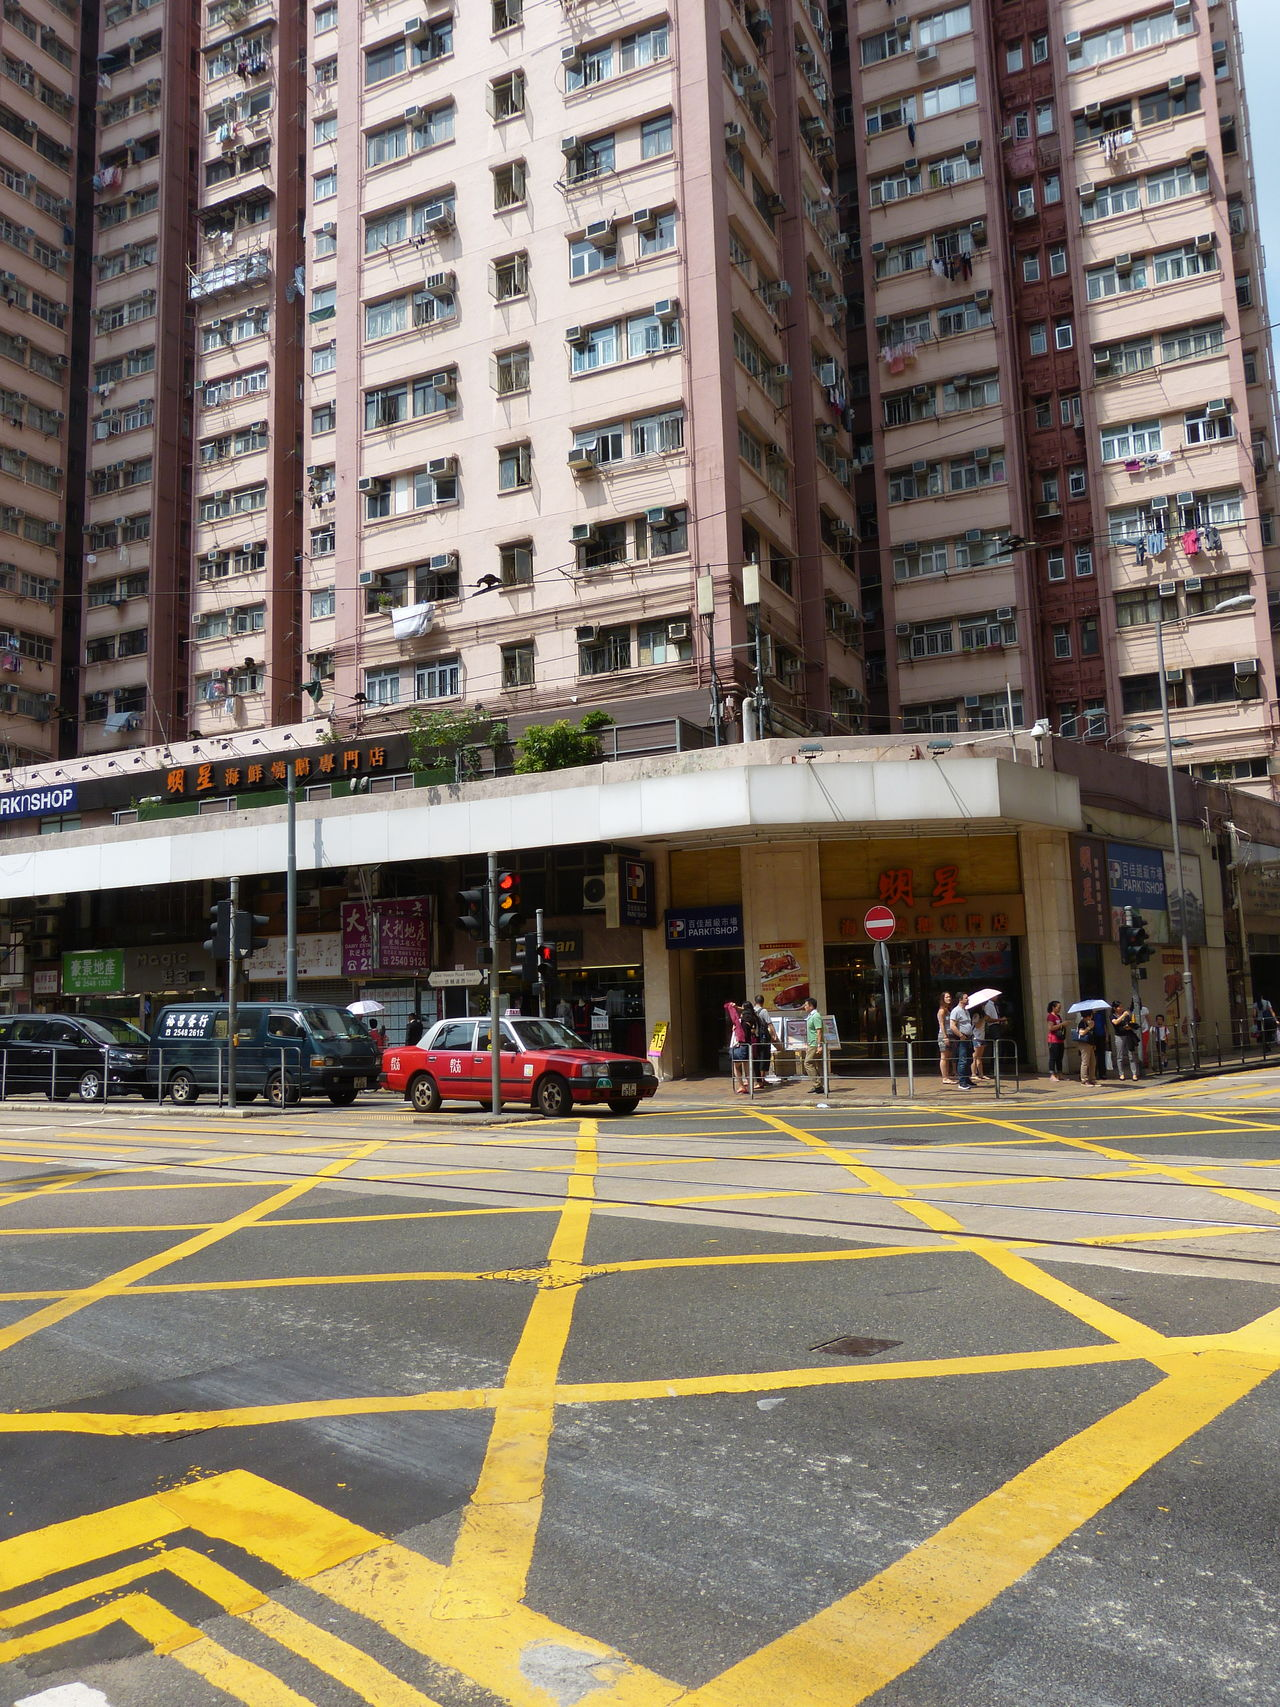 Apartment Architecture Building Exterior Built Structure Business Finance And Industry City City Life City Street Crossroad Crossroads Crossroads Of The World Day Façade No People Outdoors Road Skyscraper Street Taxi Transportation Tree